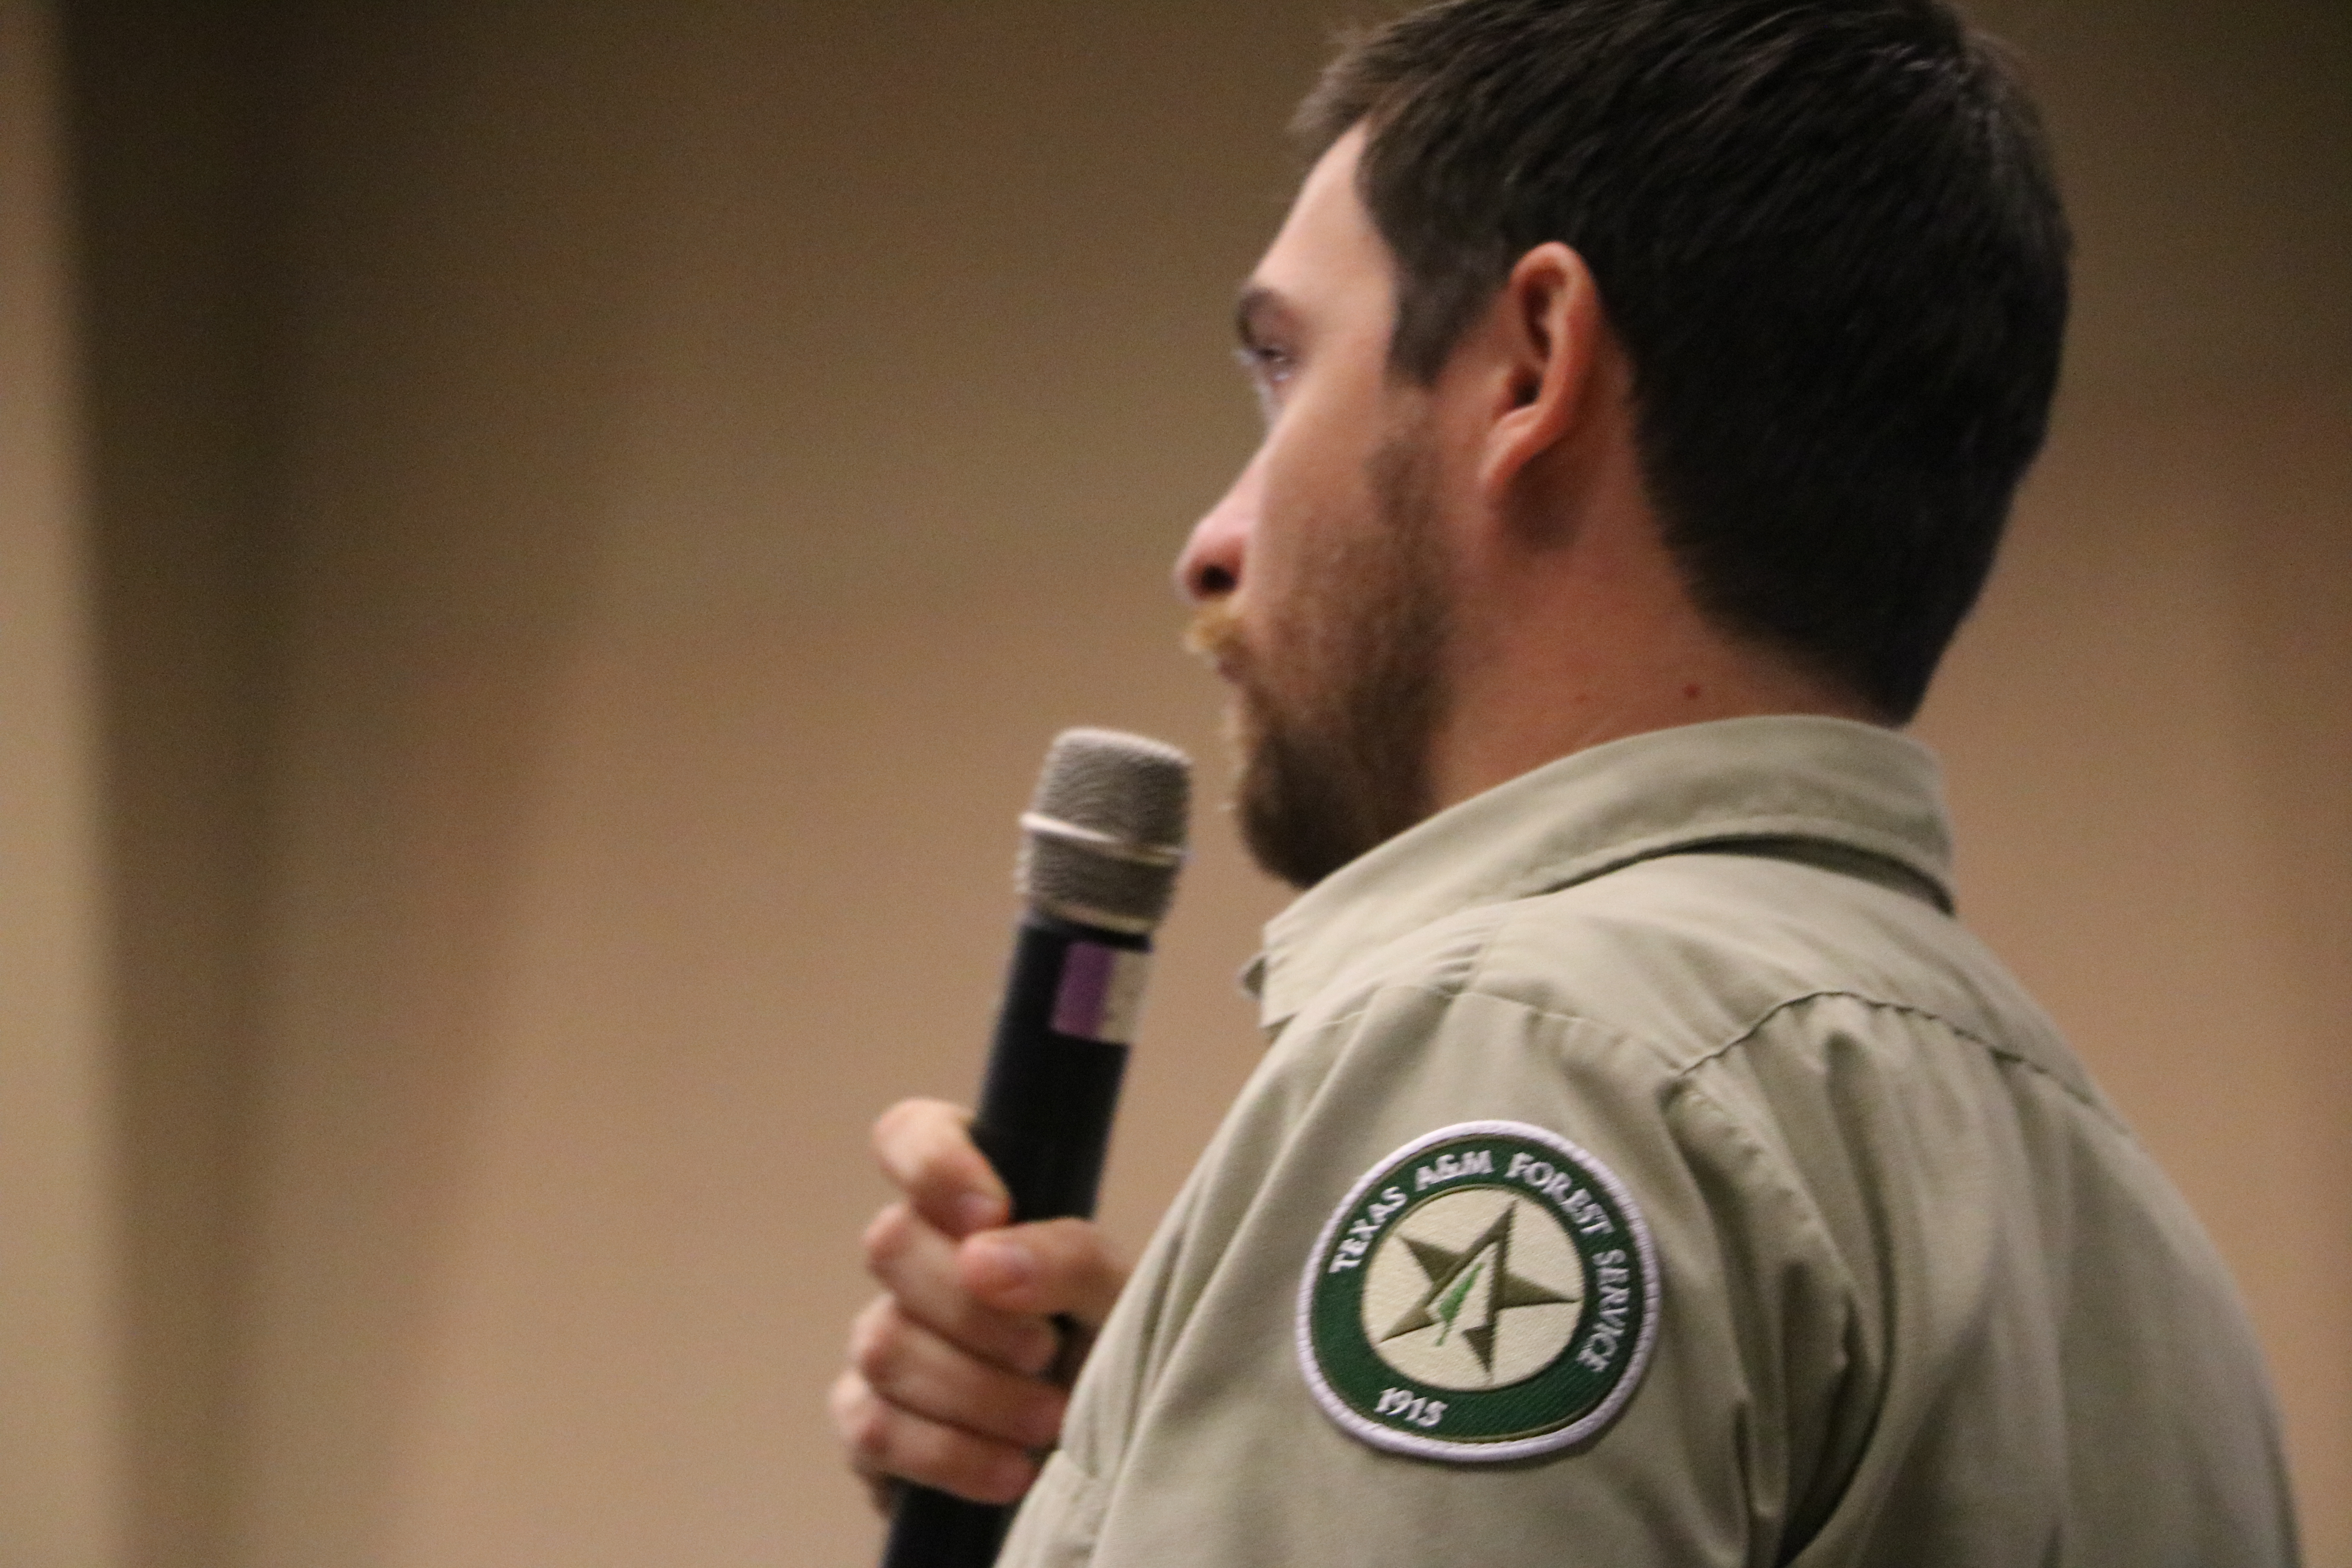 Texas A&M Forest Service celebrates successful year